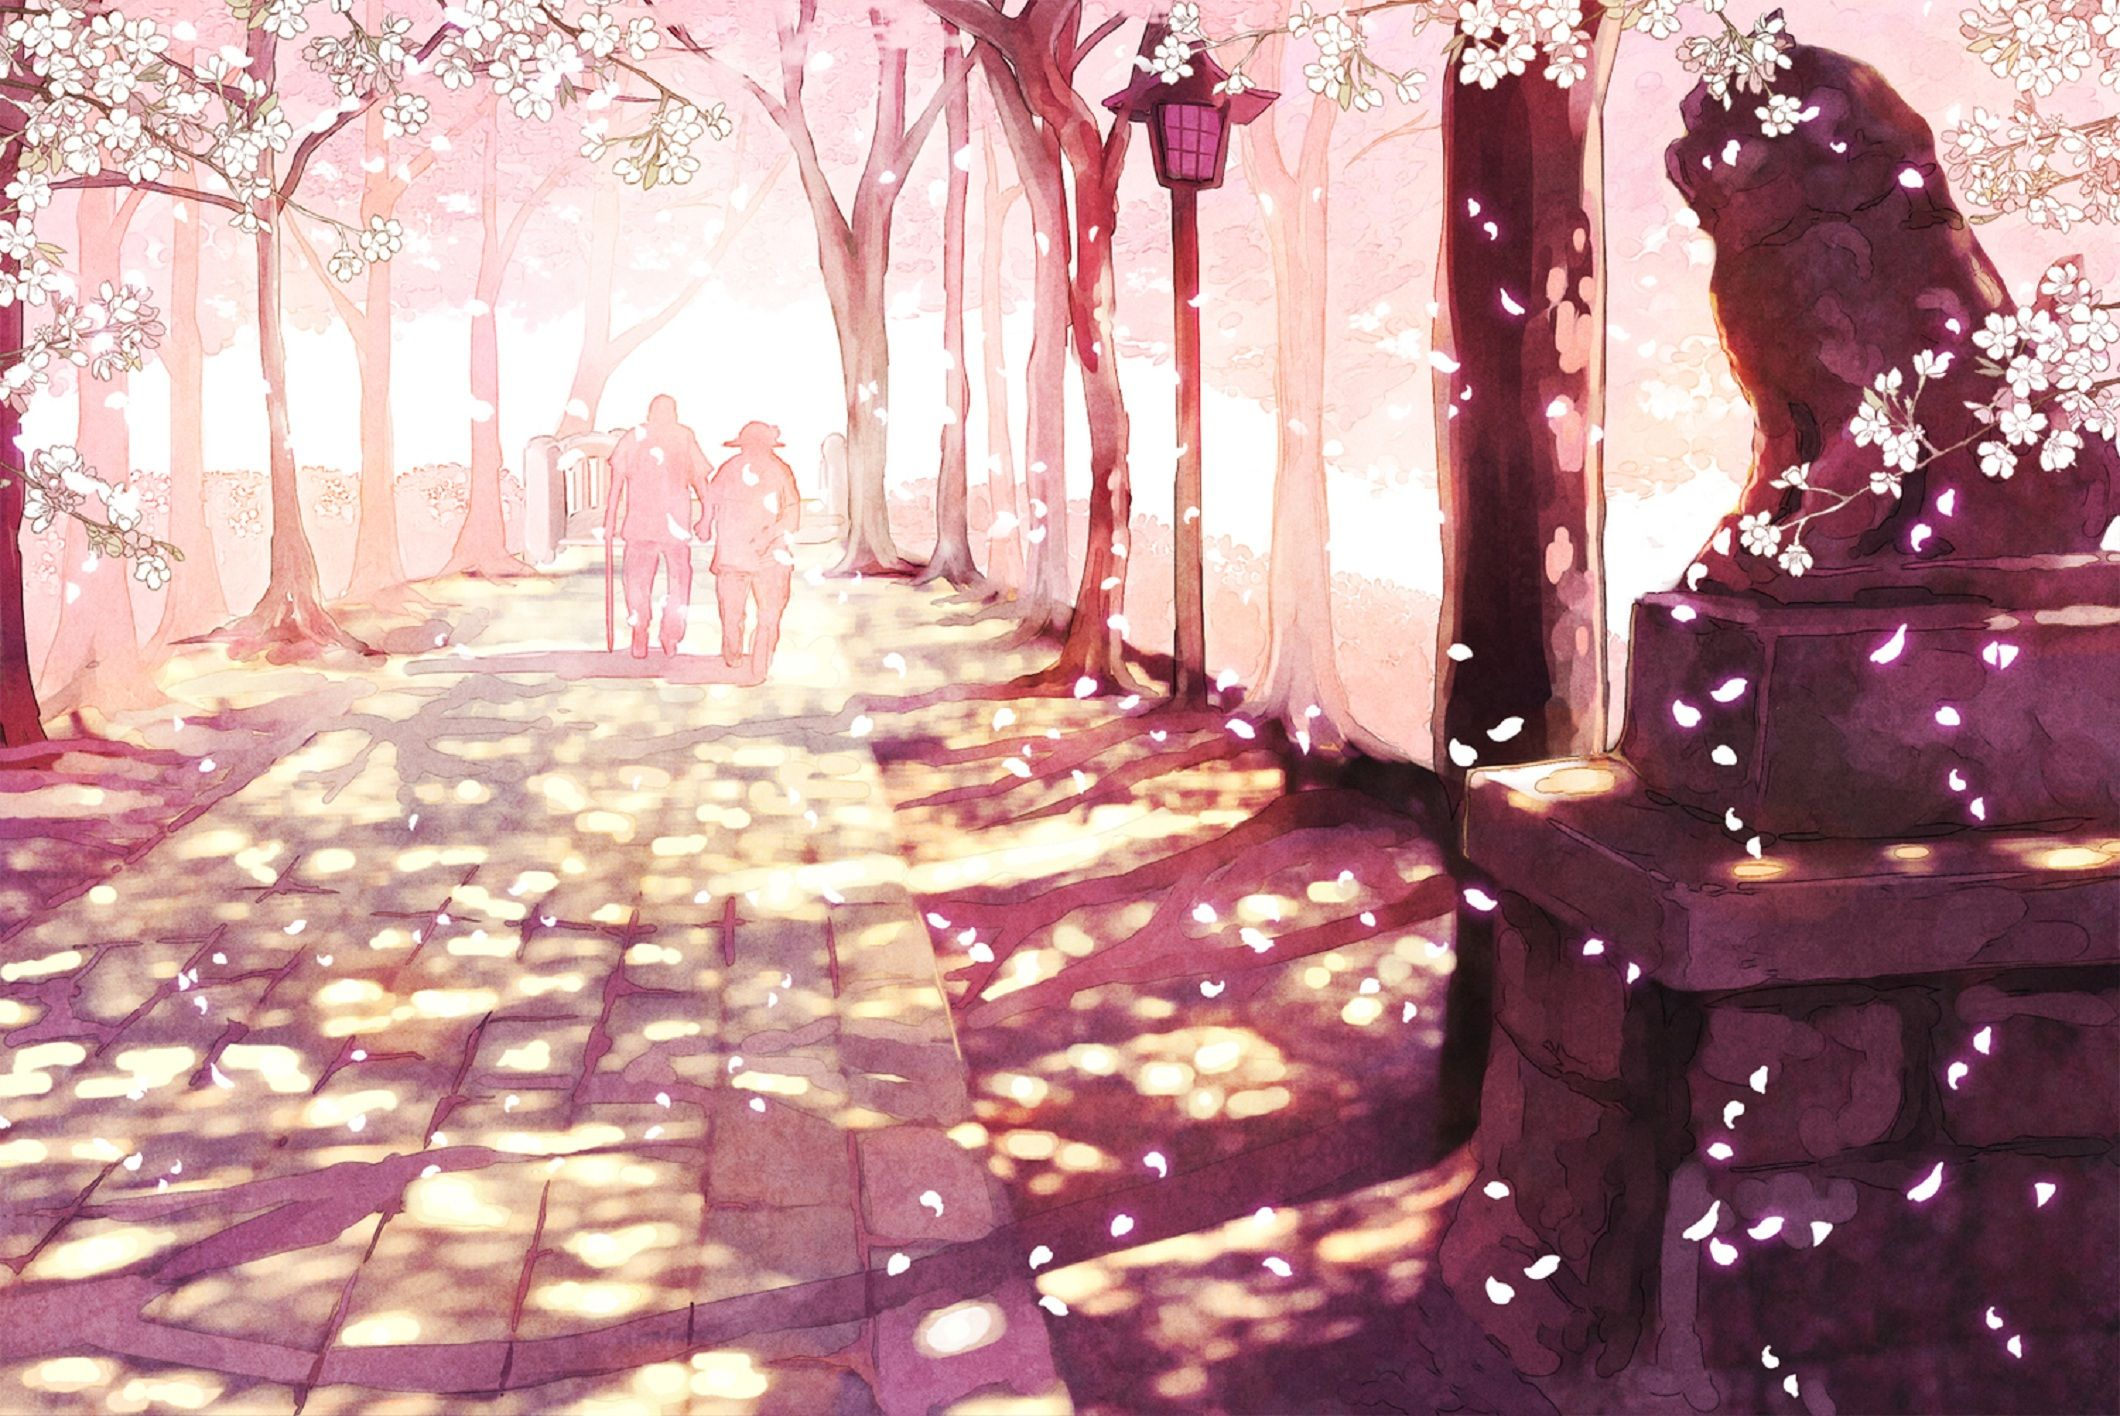 Sakura Anime Scenery Wallpaper Desktop 52782 Wallpaper In